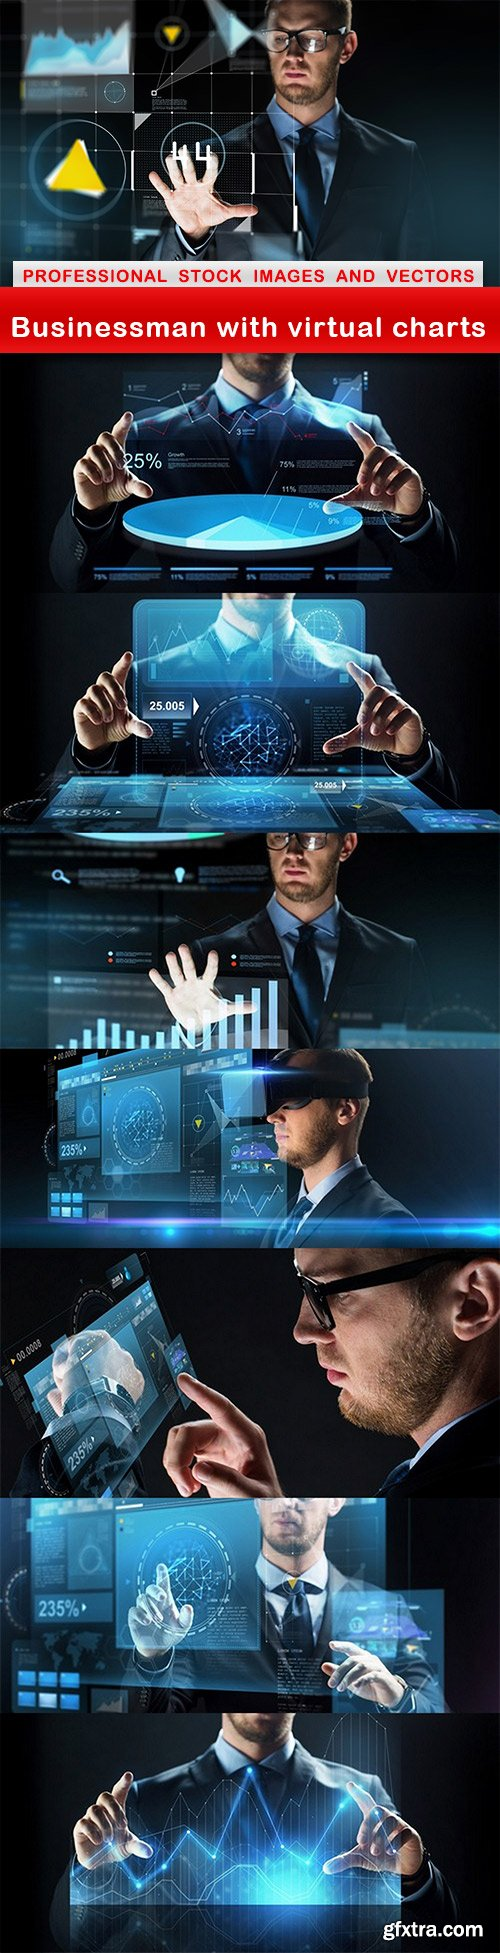 Businessman with virtual charts - 8 UHQ JPEG